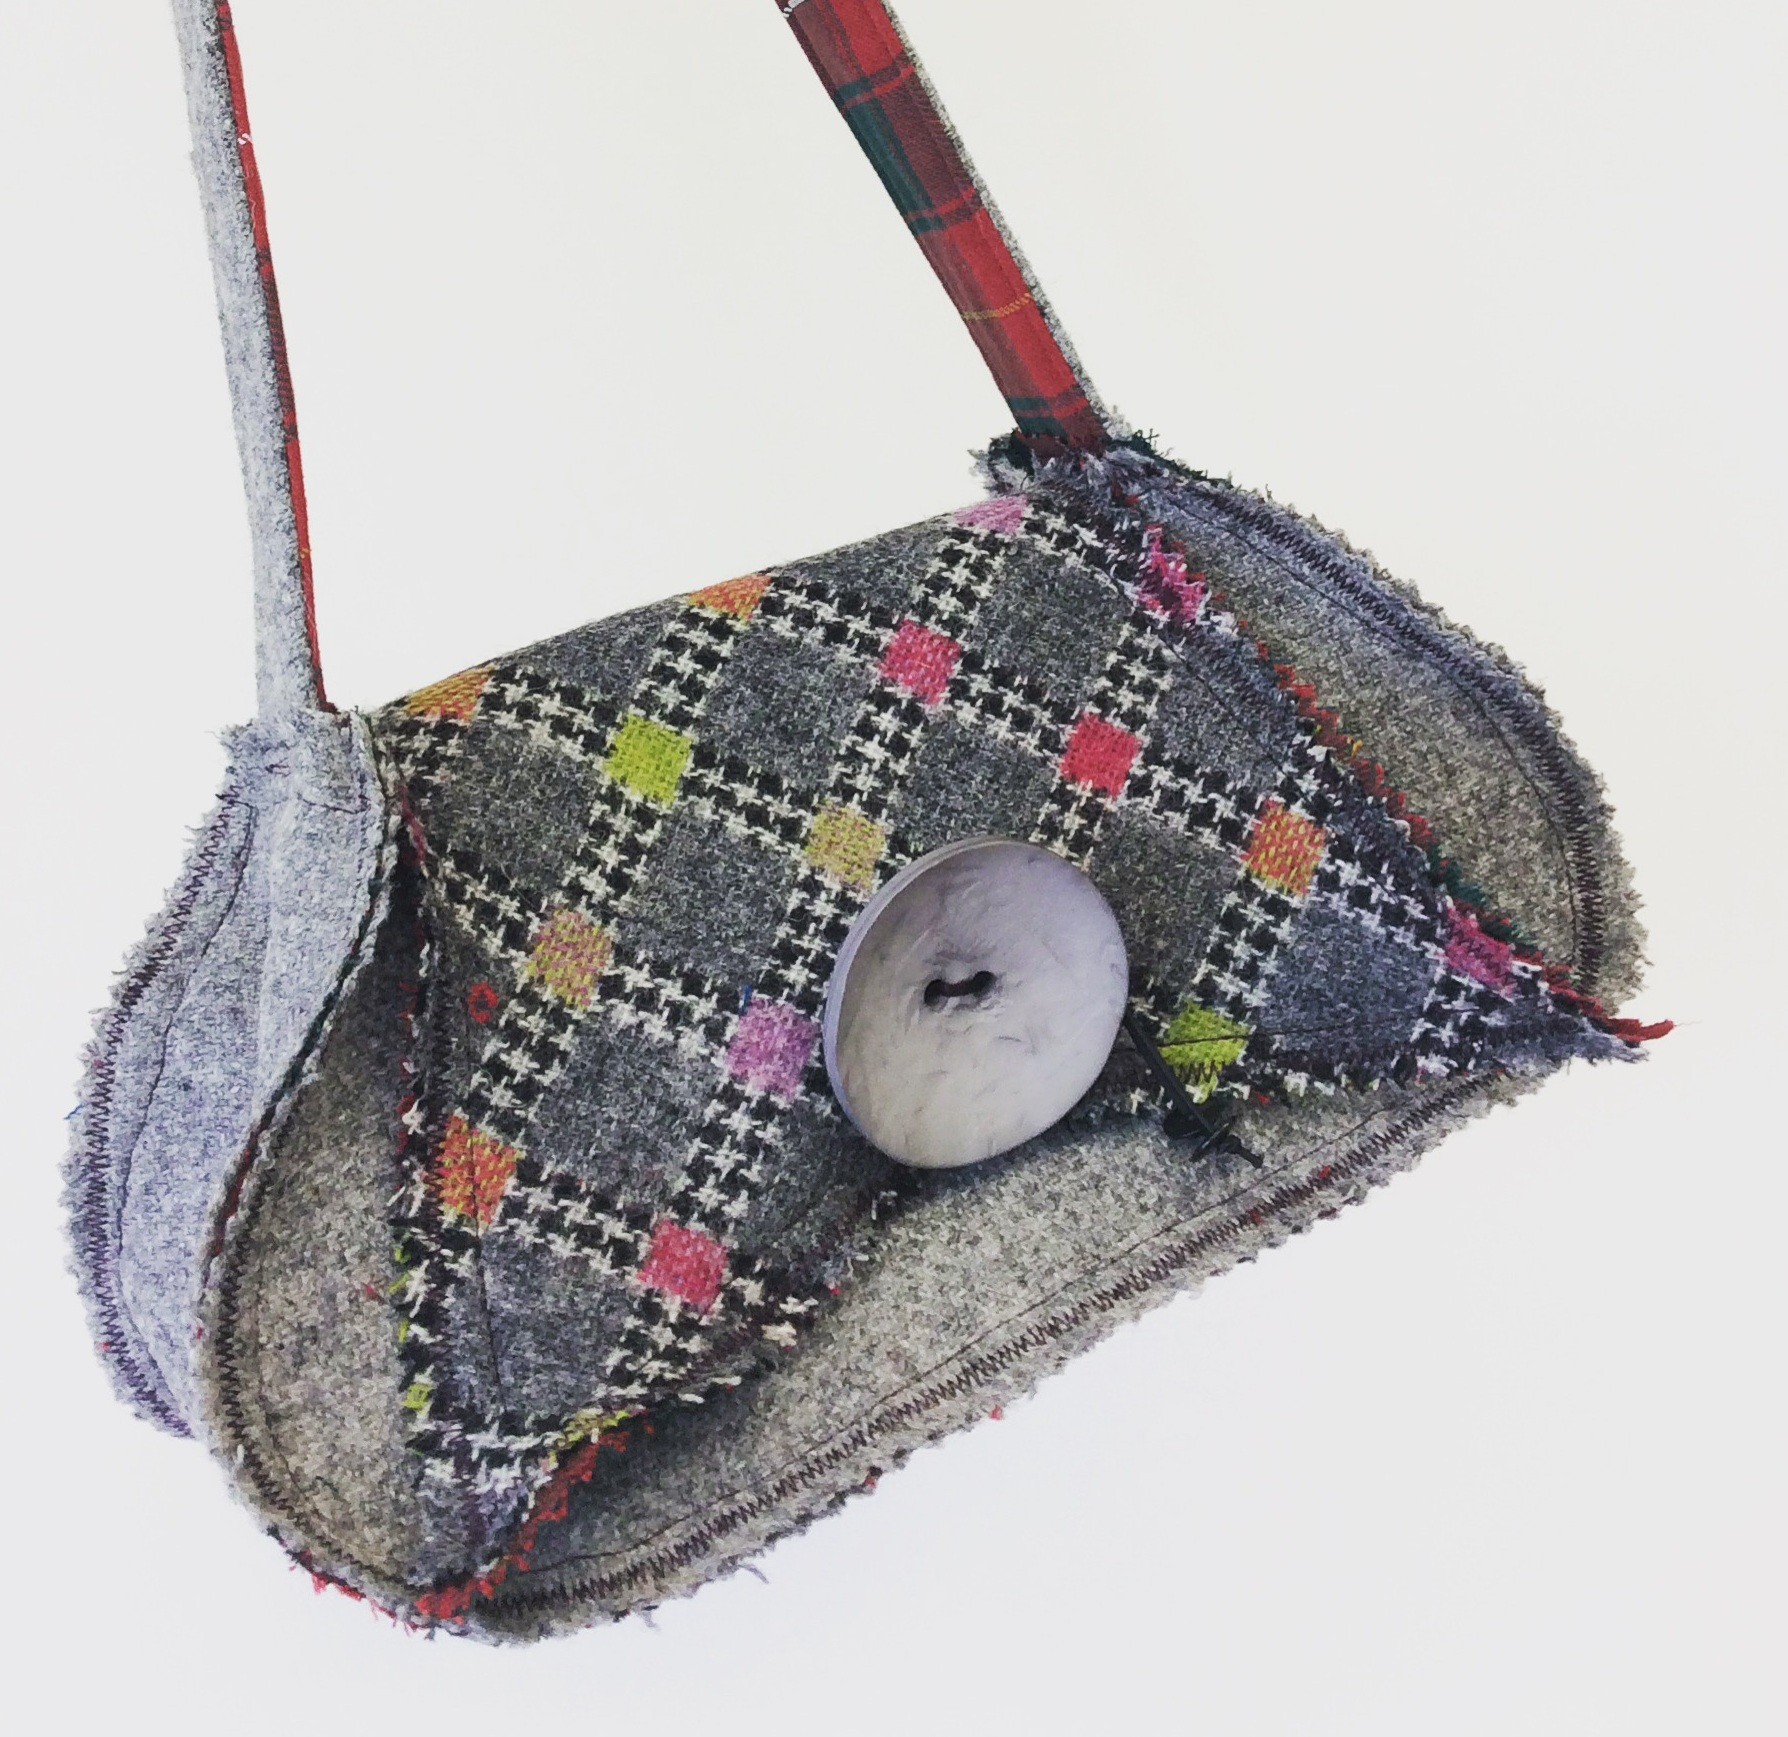 Wee Tatterwallop - The wee Tatterwallop meaning small ragged garment are small shoulder bags with most of their seams on the outside giving them a distinctive casual look. They are fully lined with two internal pockets. One with a hand-covered button closure and they are finished off with large over-sized button and strong elastic closure.